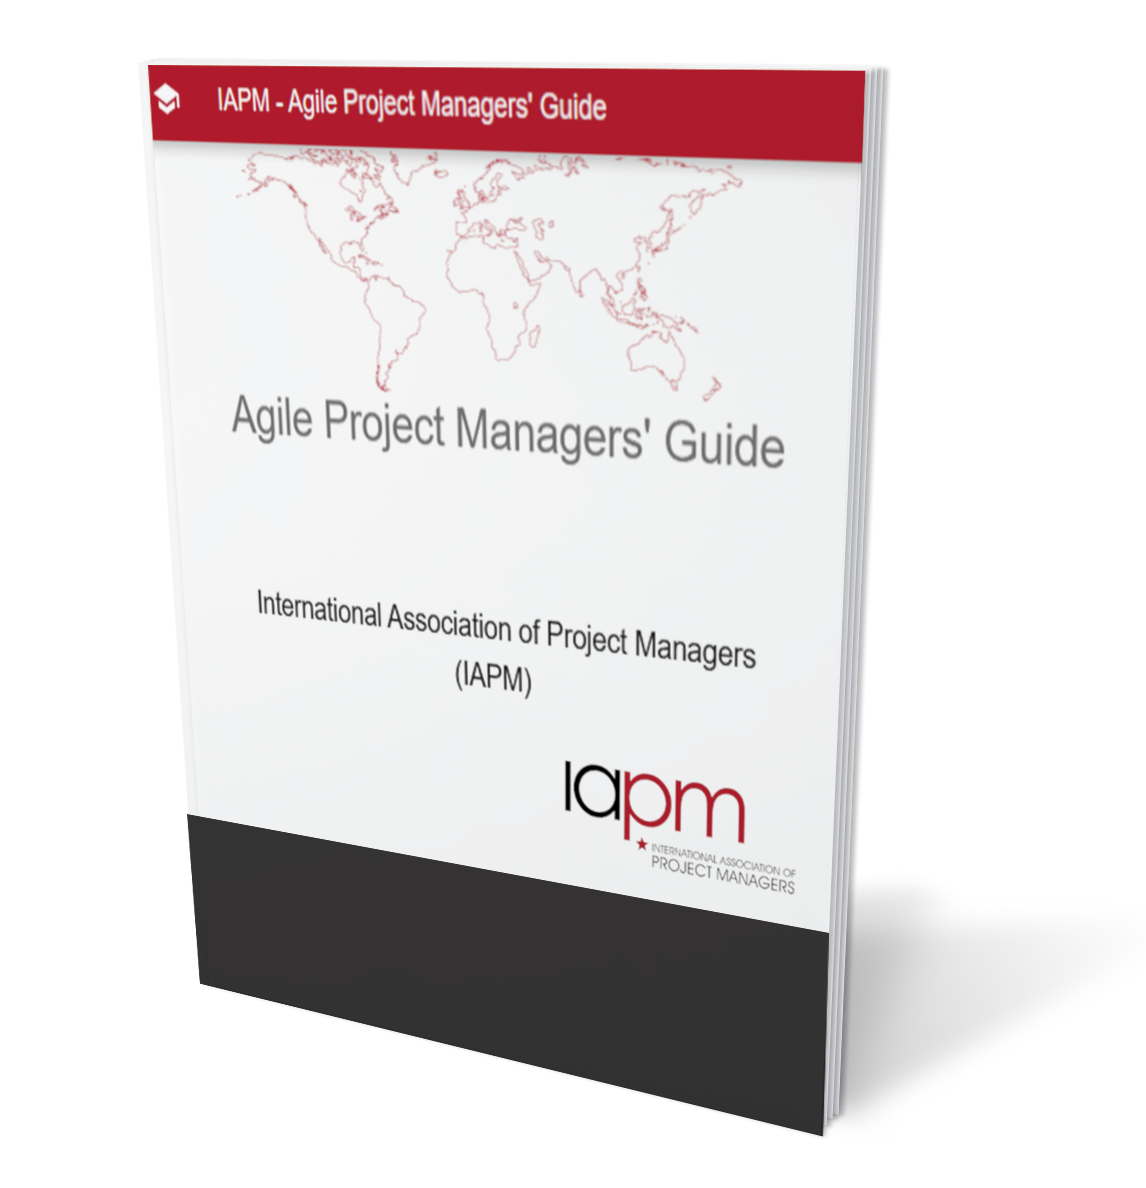 Agile Project Managers' Guide (IAPM): Scrum, Kanban und Extreme Programming